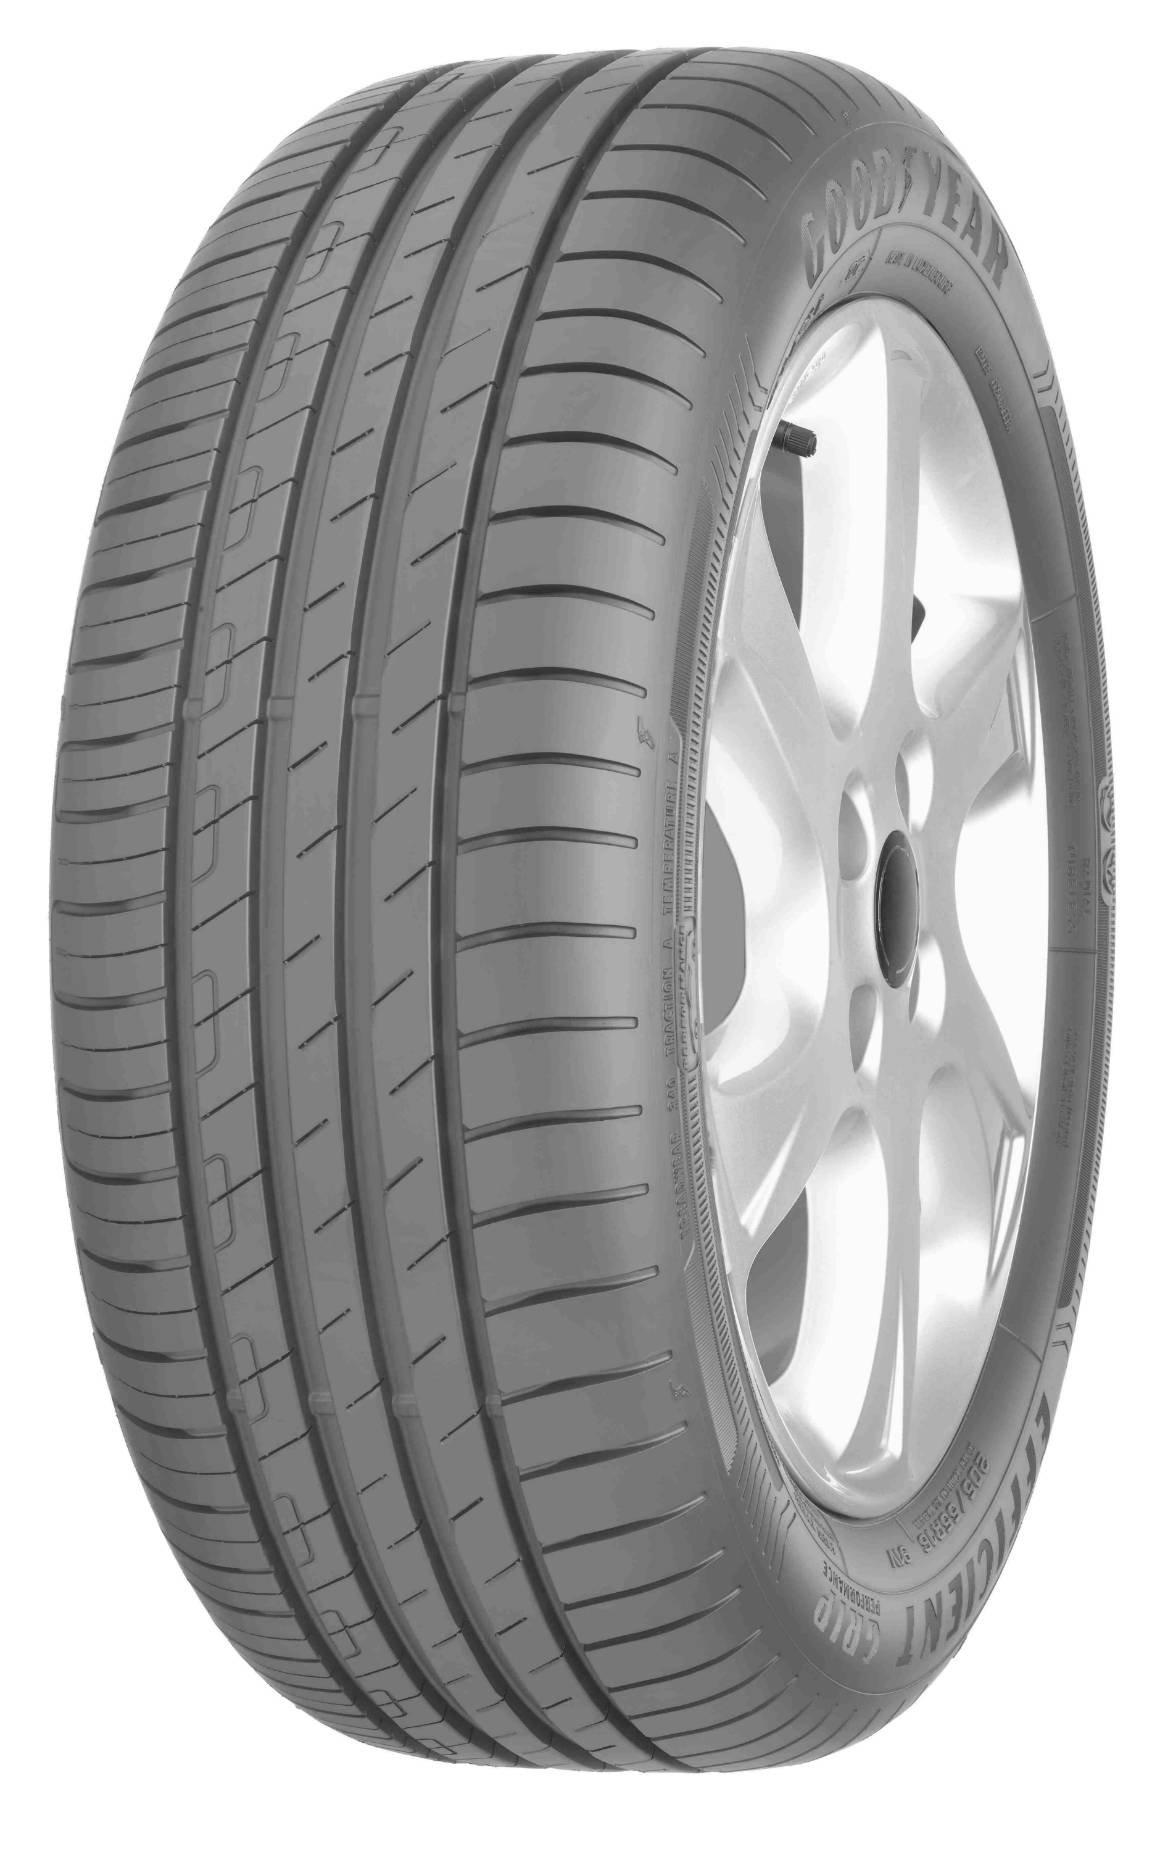 Neumático GOODYEAR EFFIGRIP PERFORMANCE 205/55R17 95 V